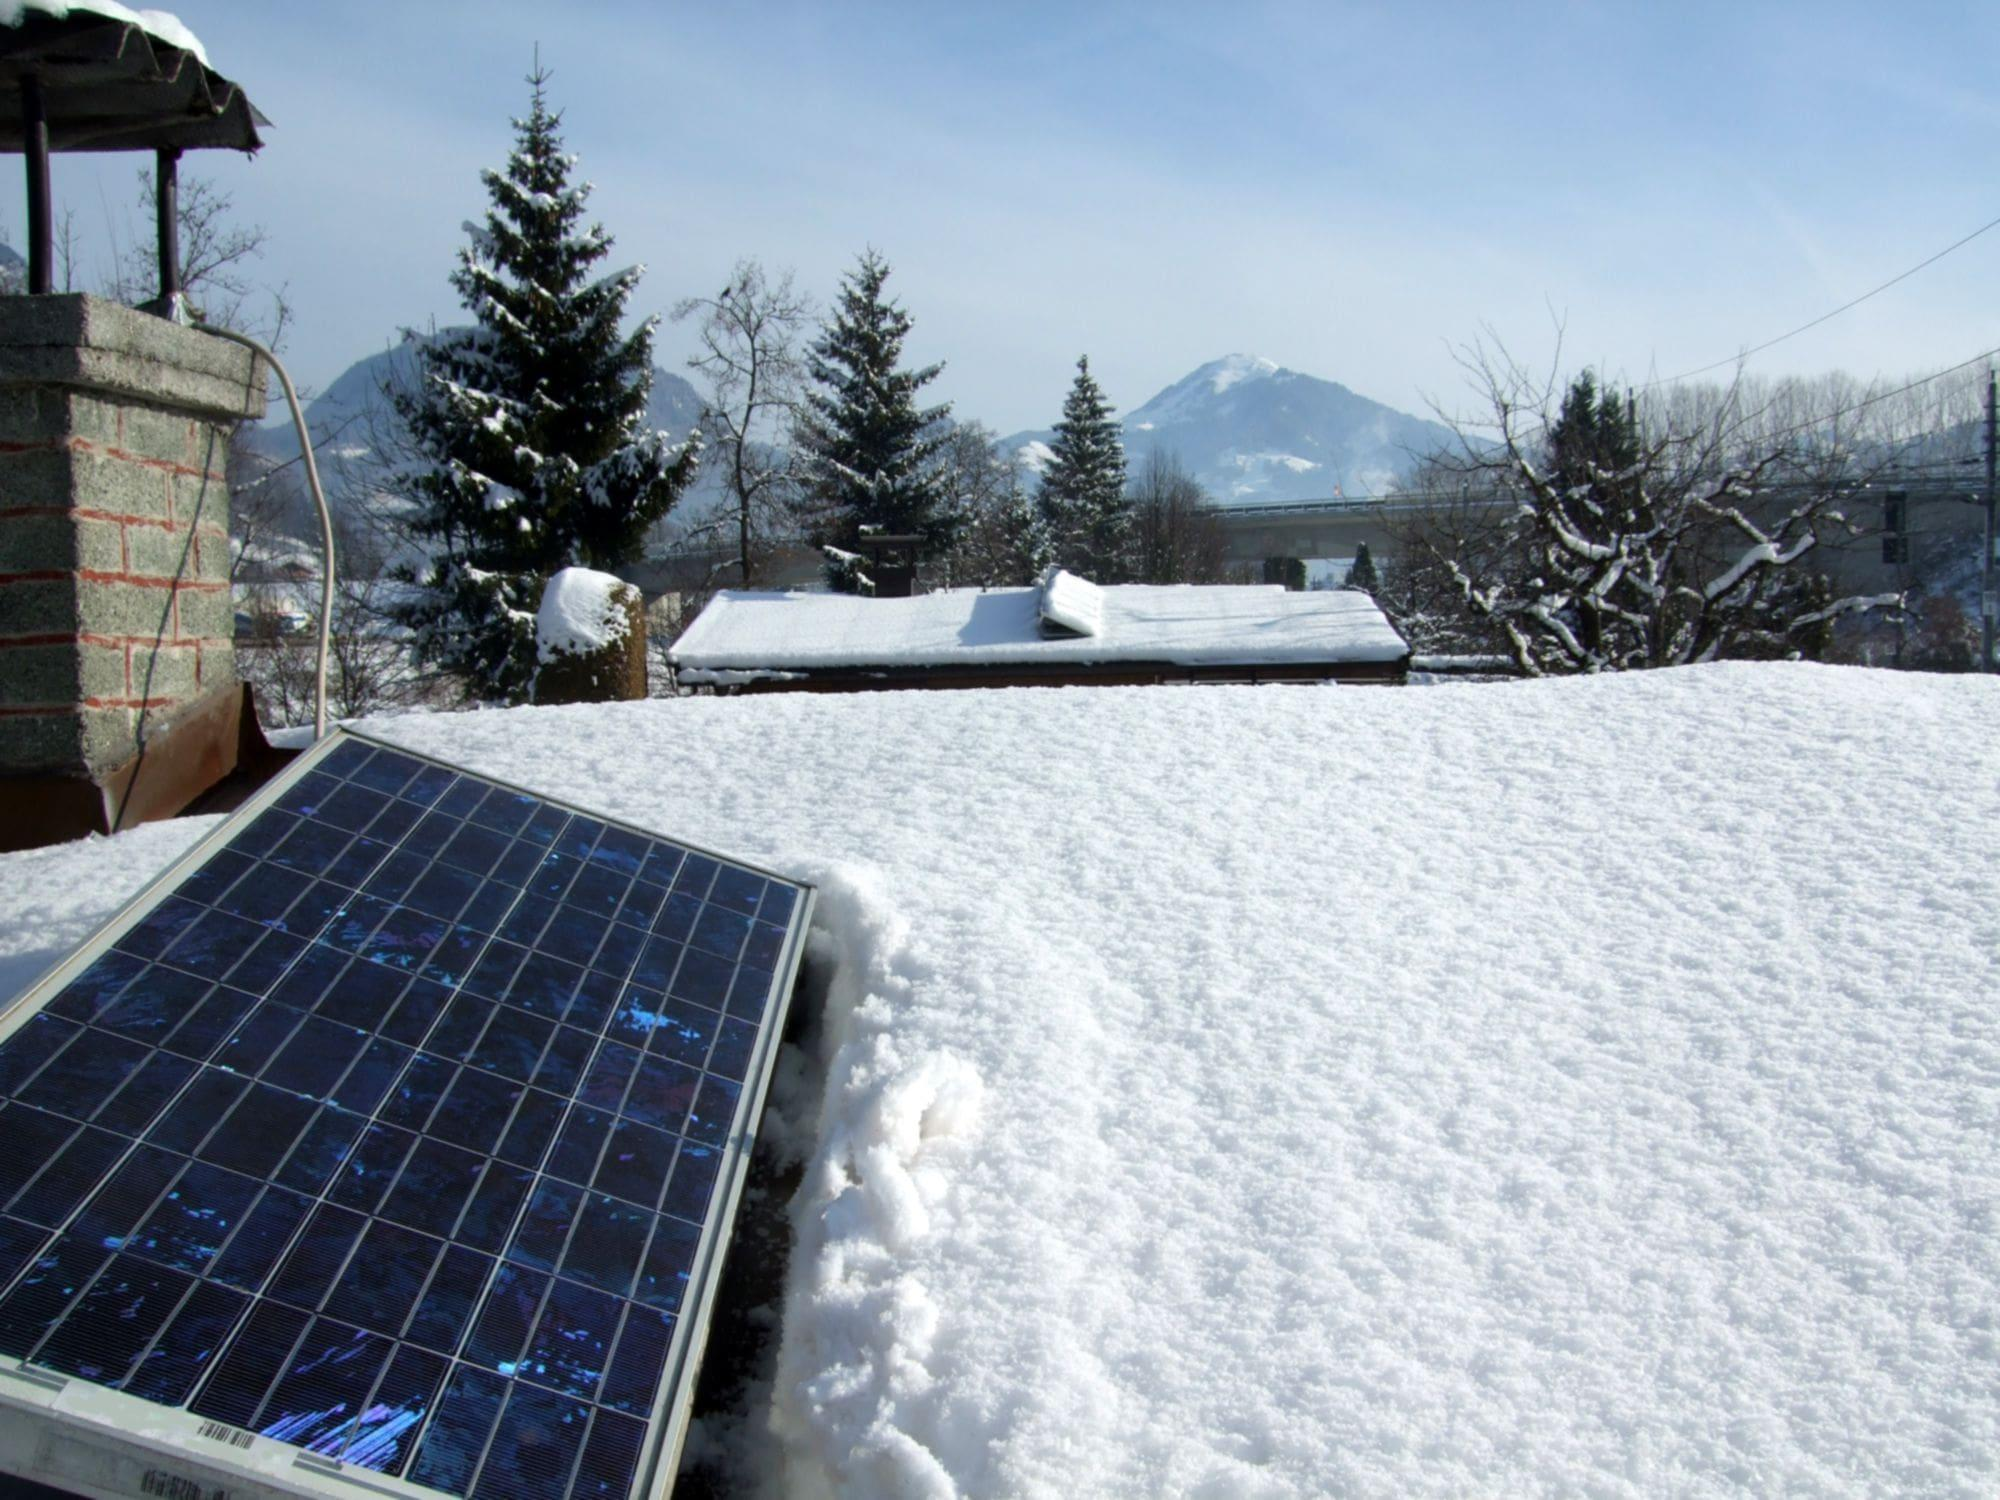 solar panel on snowy residential roof with mountains in background